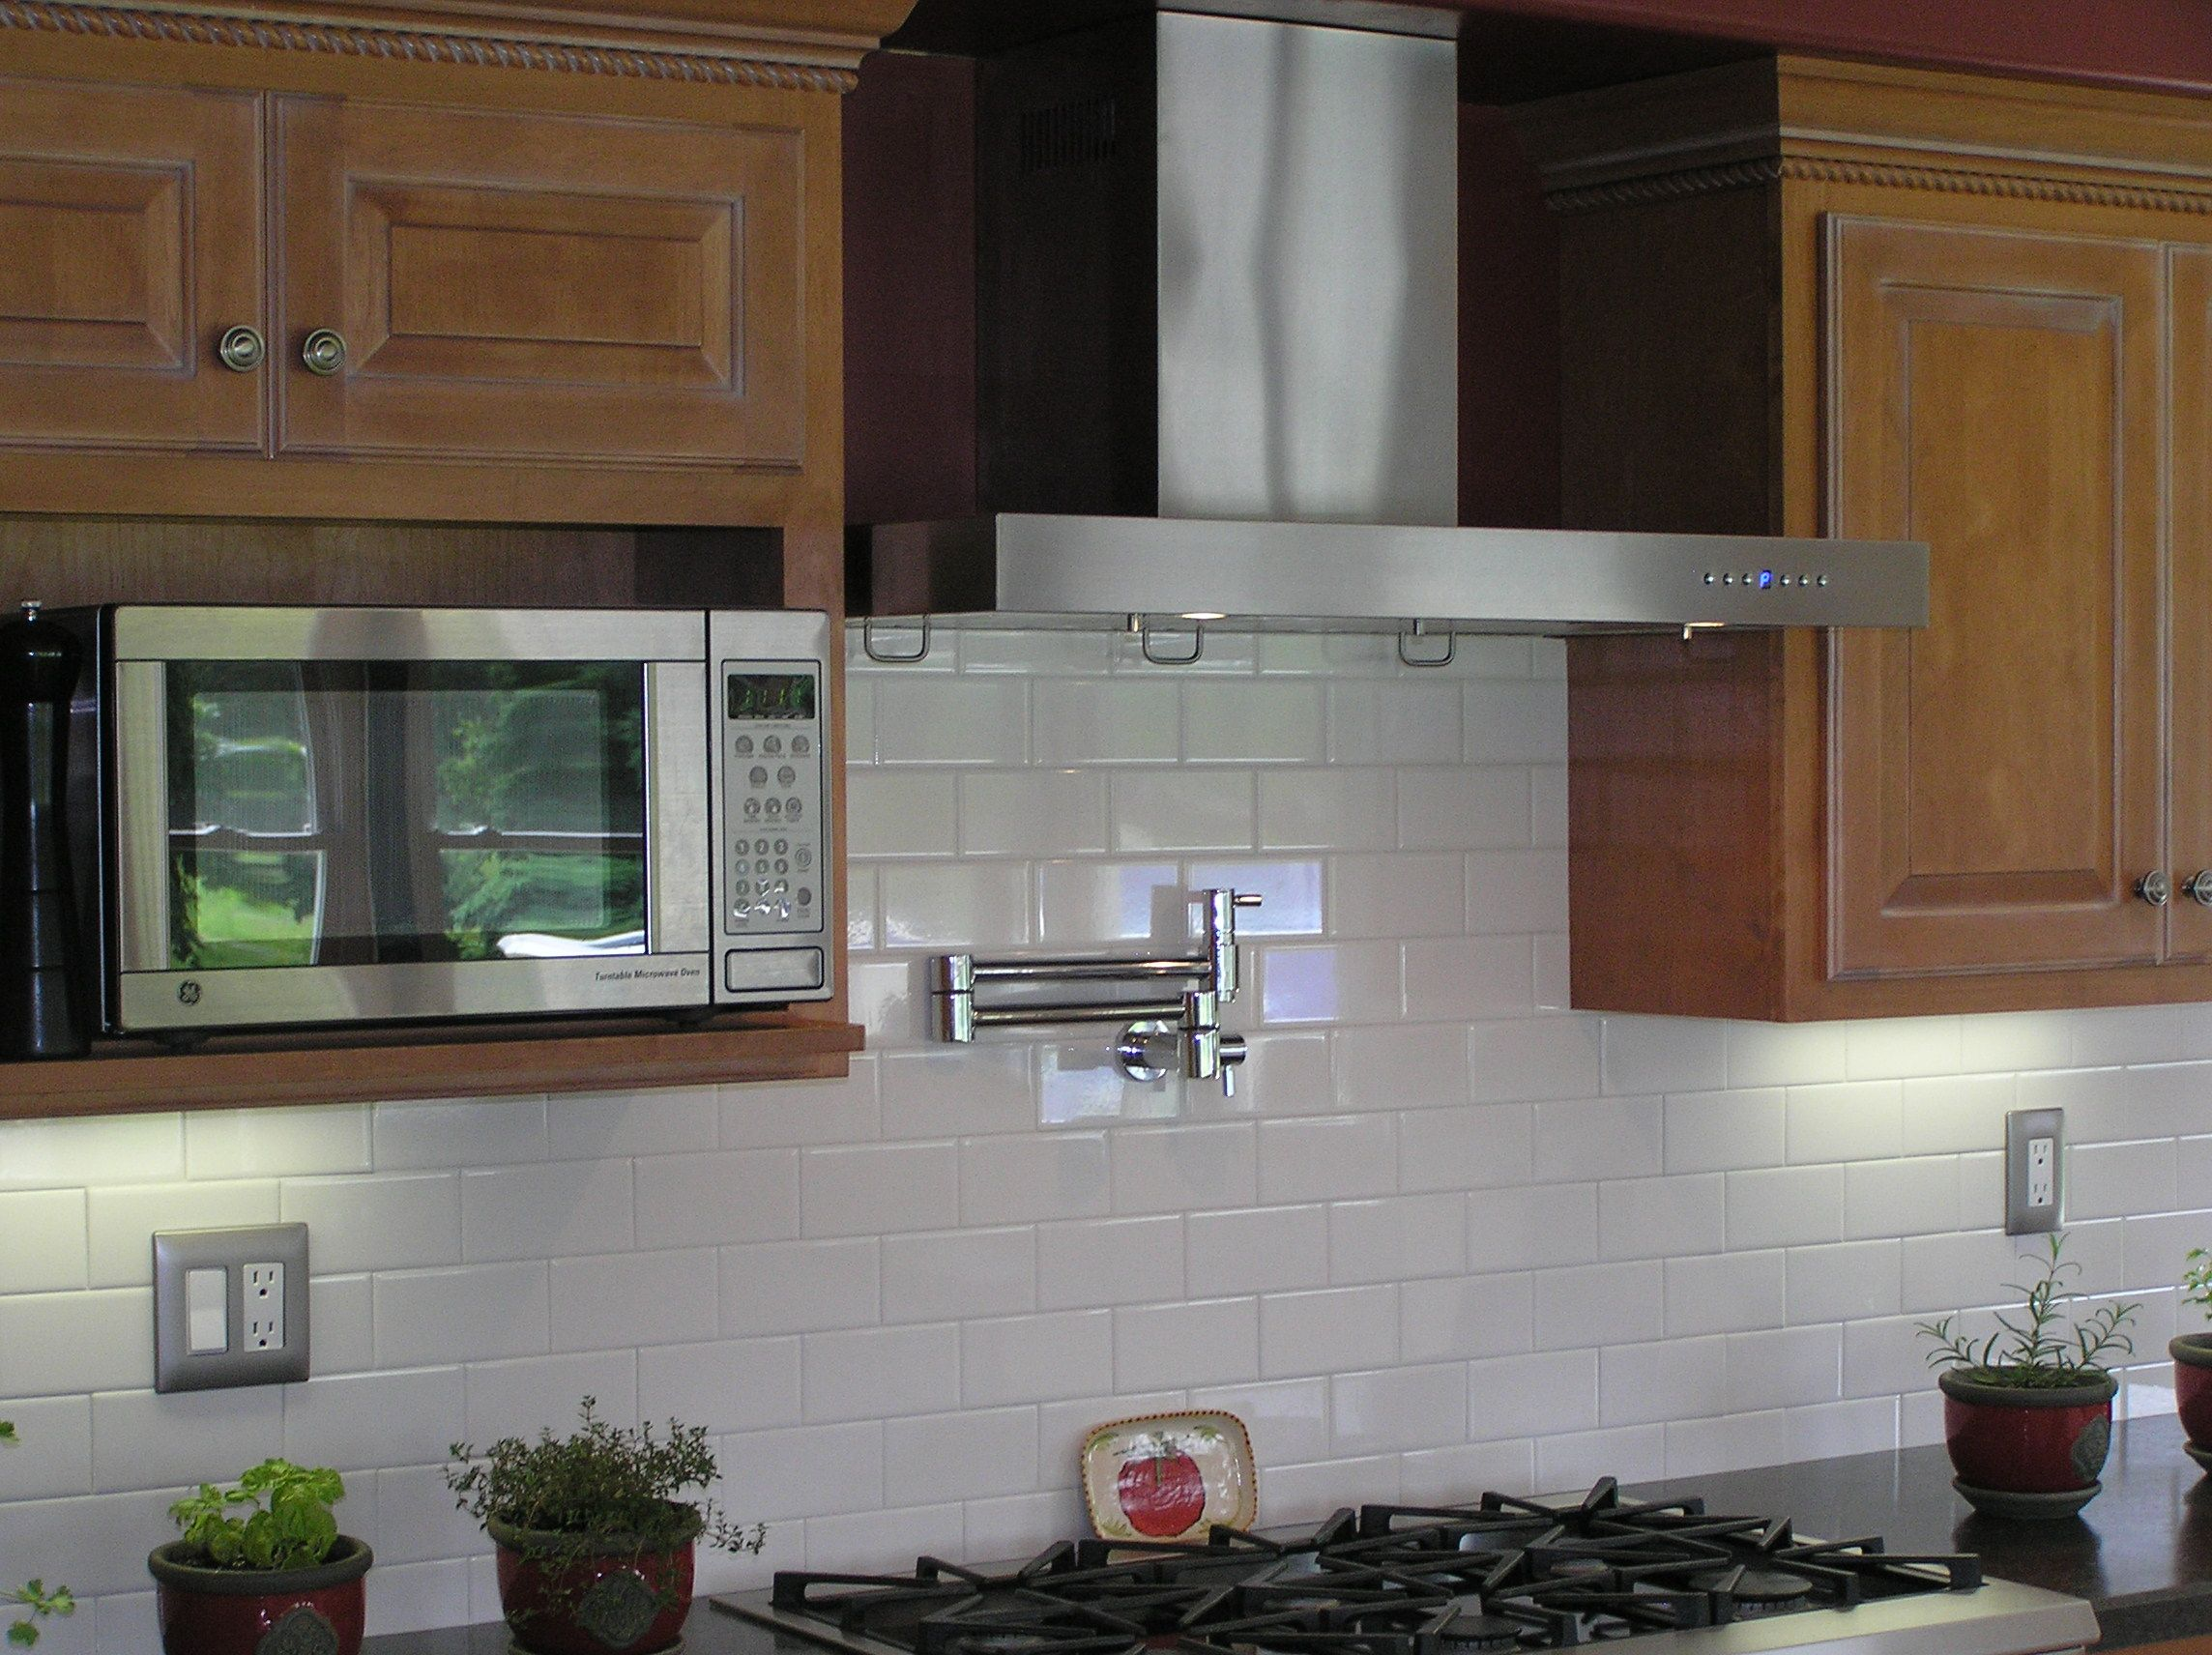 Beautiful White Kitchen with a marble backsplash featuring the #2: e196c89b34f12f1e5d31fc80c4d6dc41